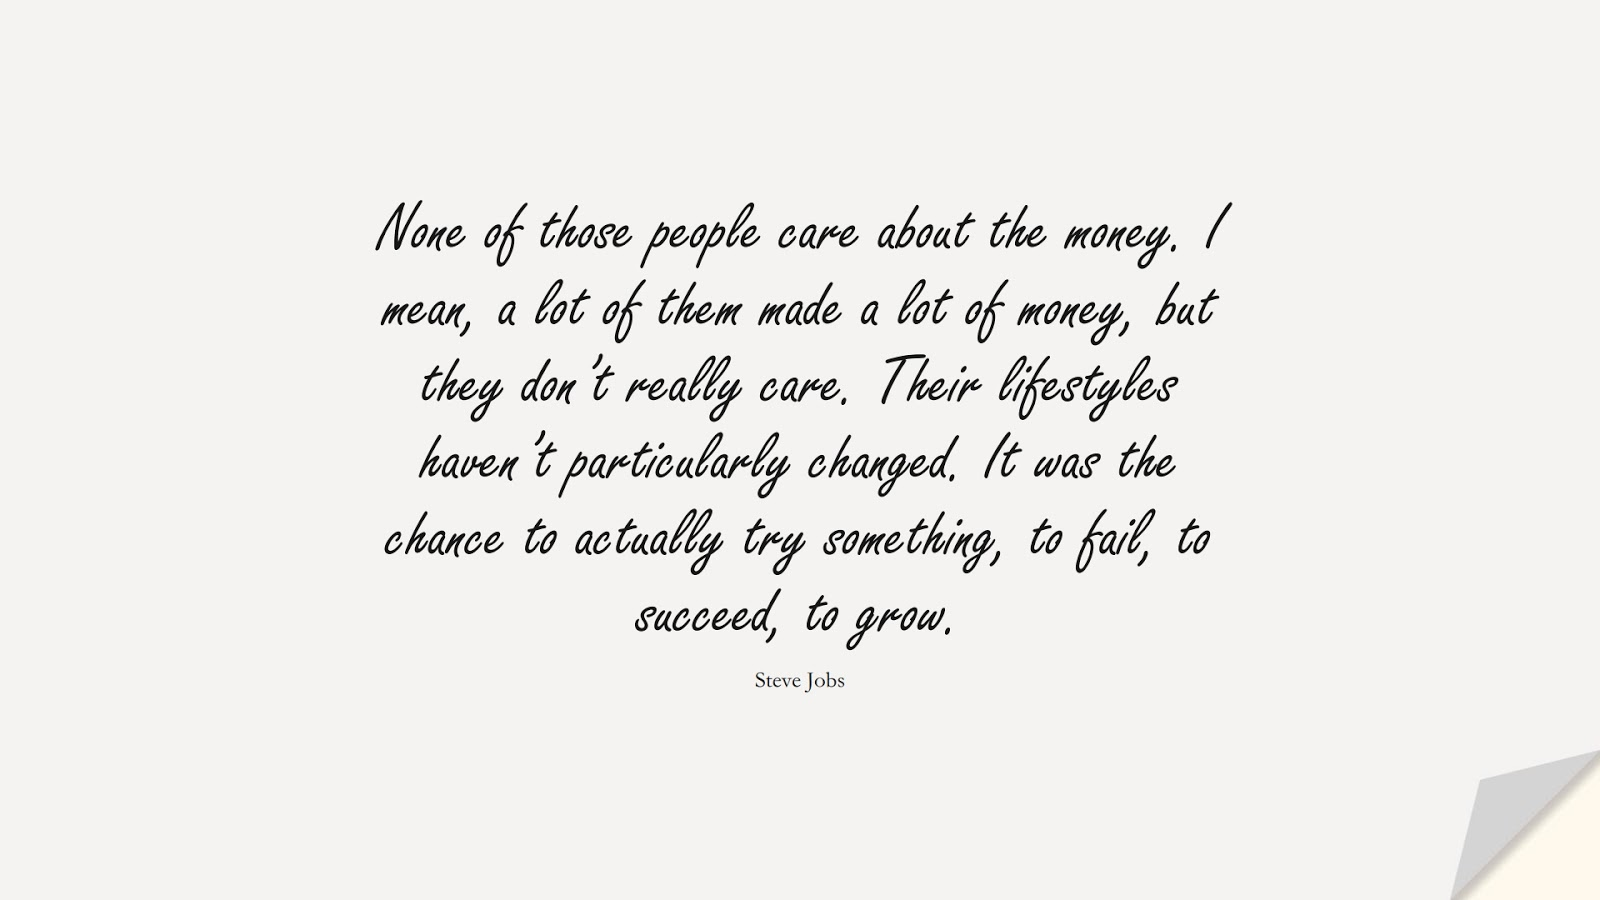 None of those people care about the money. I mean, a lot of them made a lot of money, but they don't really care. Their lifestyles haven't particularly changed. It was the chance to actually try something, to fail, to succeed, to grow. (Steve Jobs);  #SteveJobsQuotes